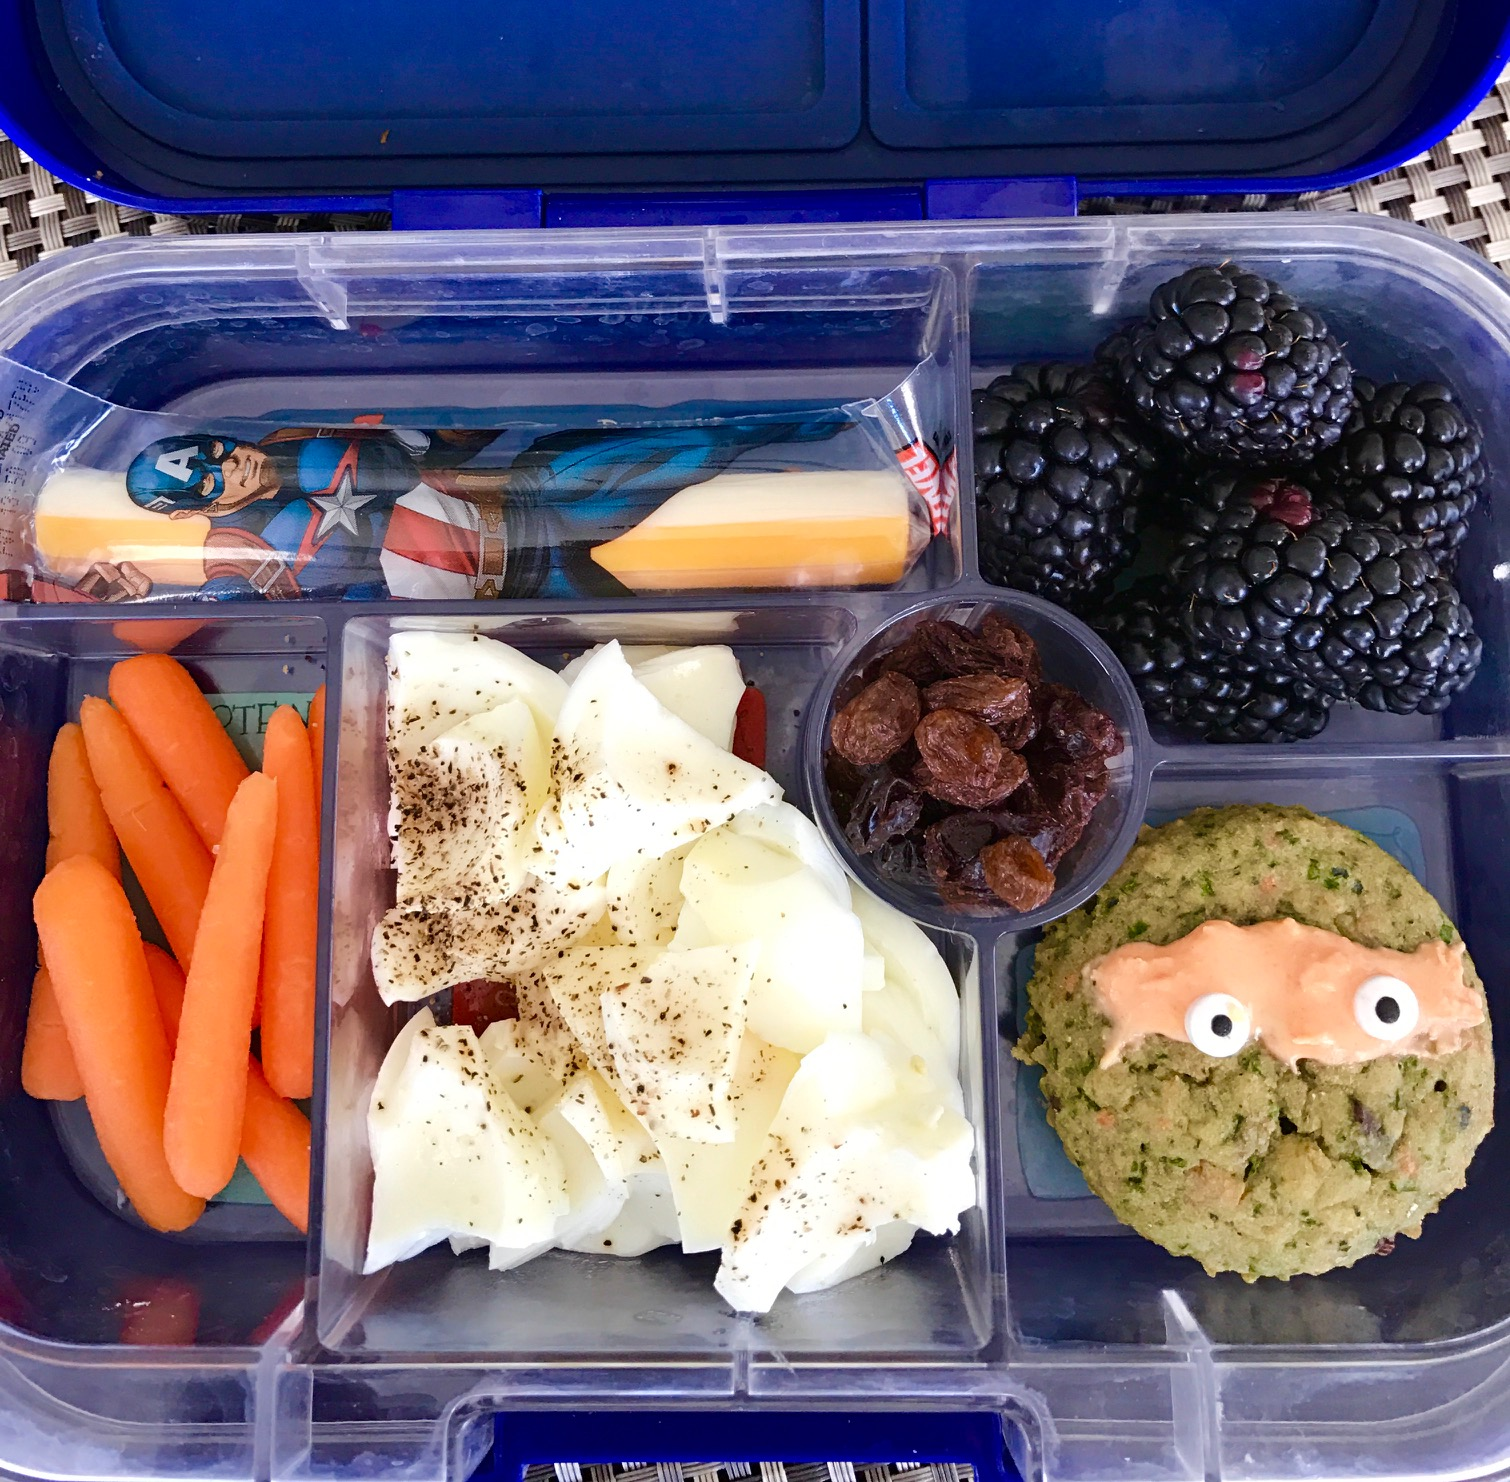 A healthy toddler lunch box meal including a green vegetable muffin